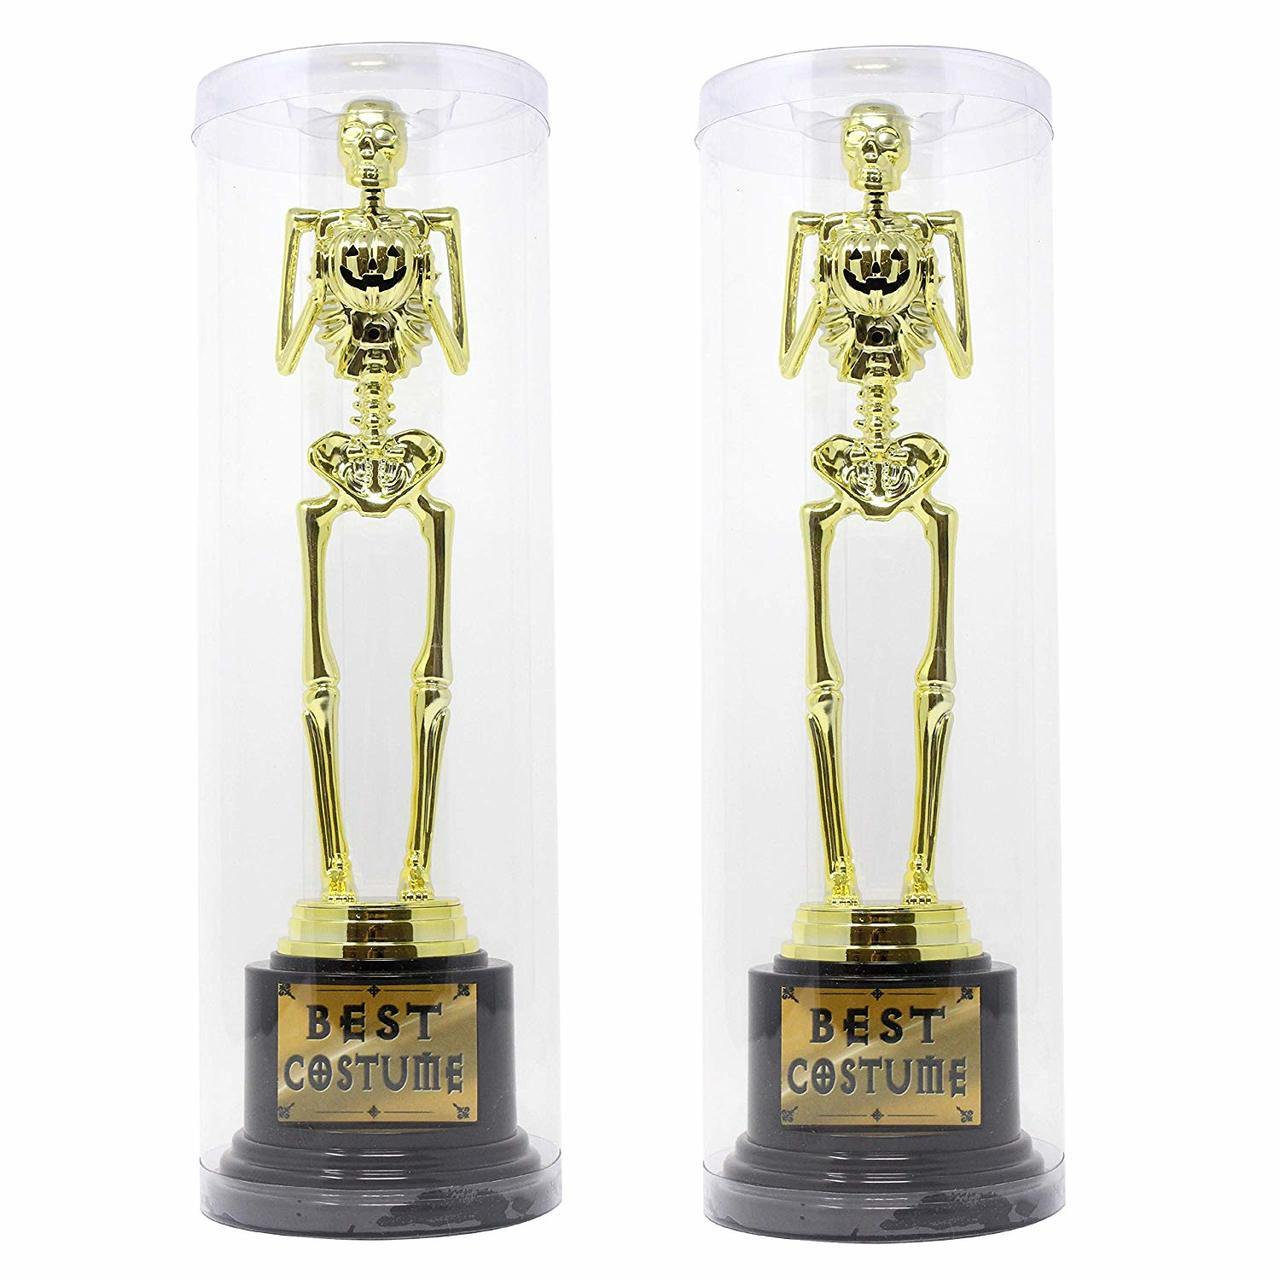 Best Costume Trophies 2-Pack